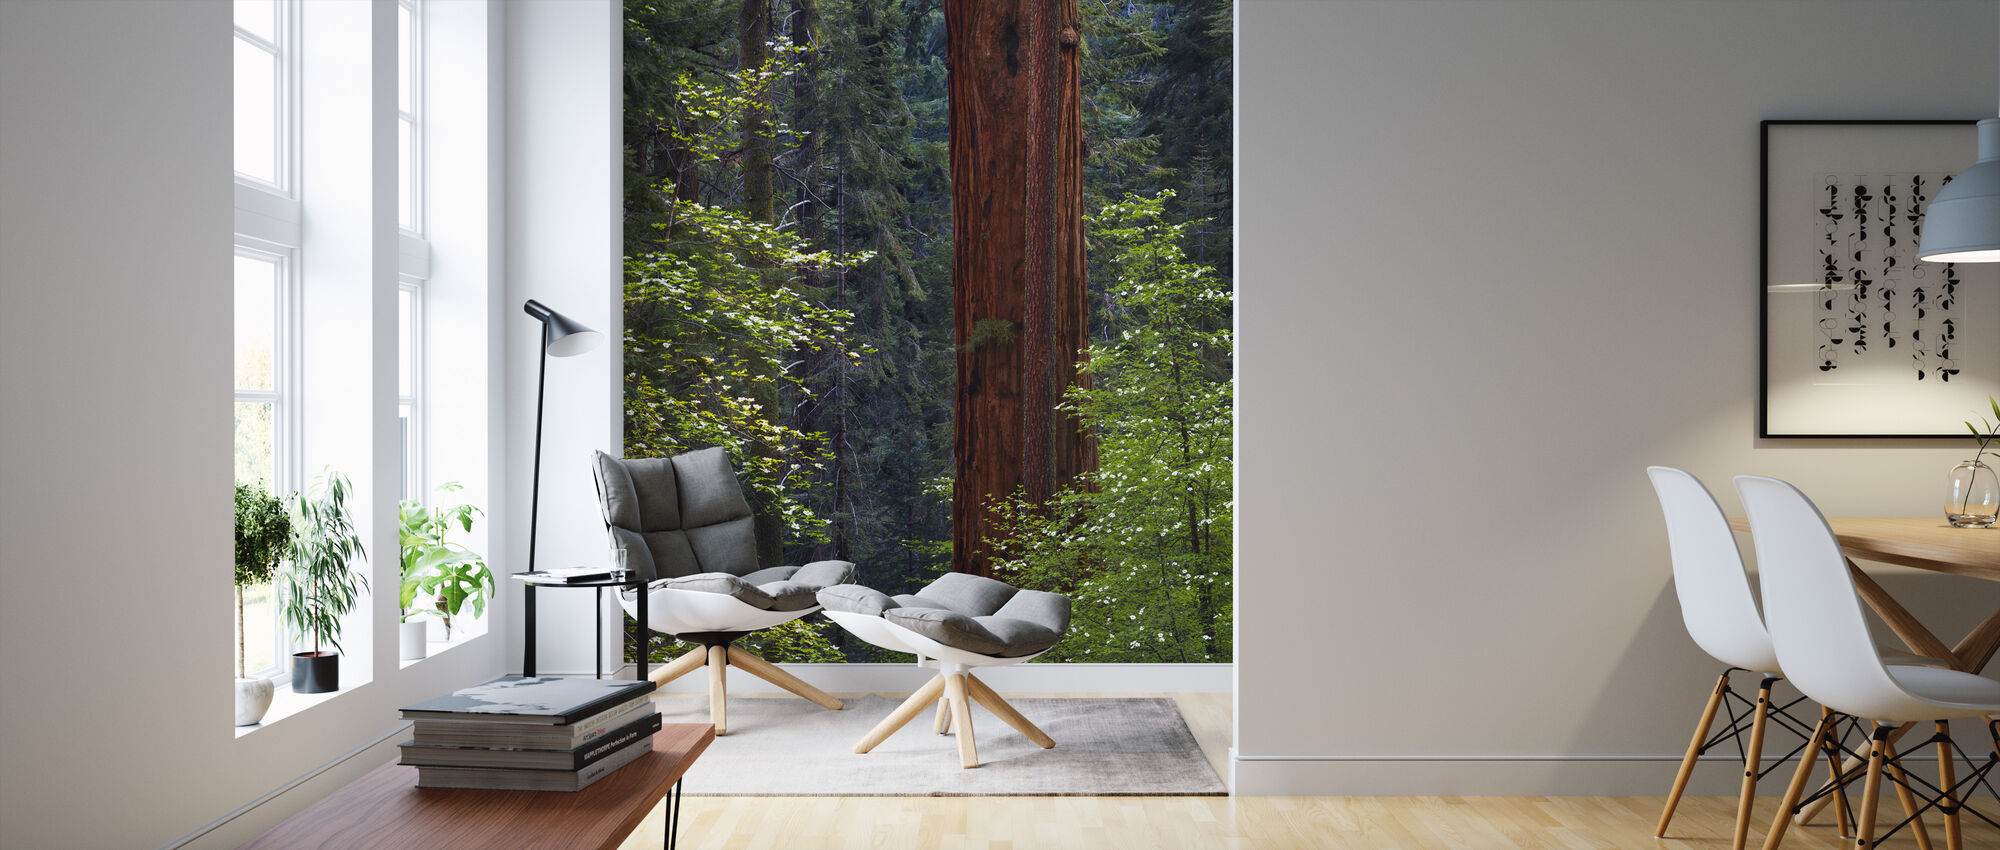 Pacific Dogwood Tree and Giant Sequoia, California - Wallpaper - Living Room